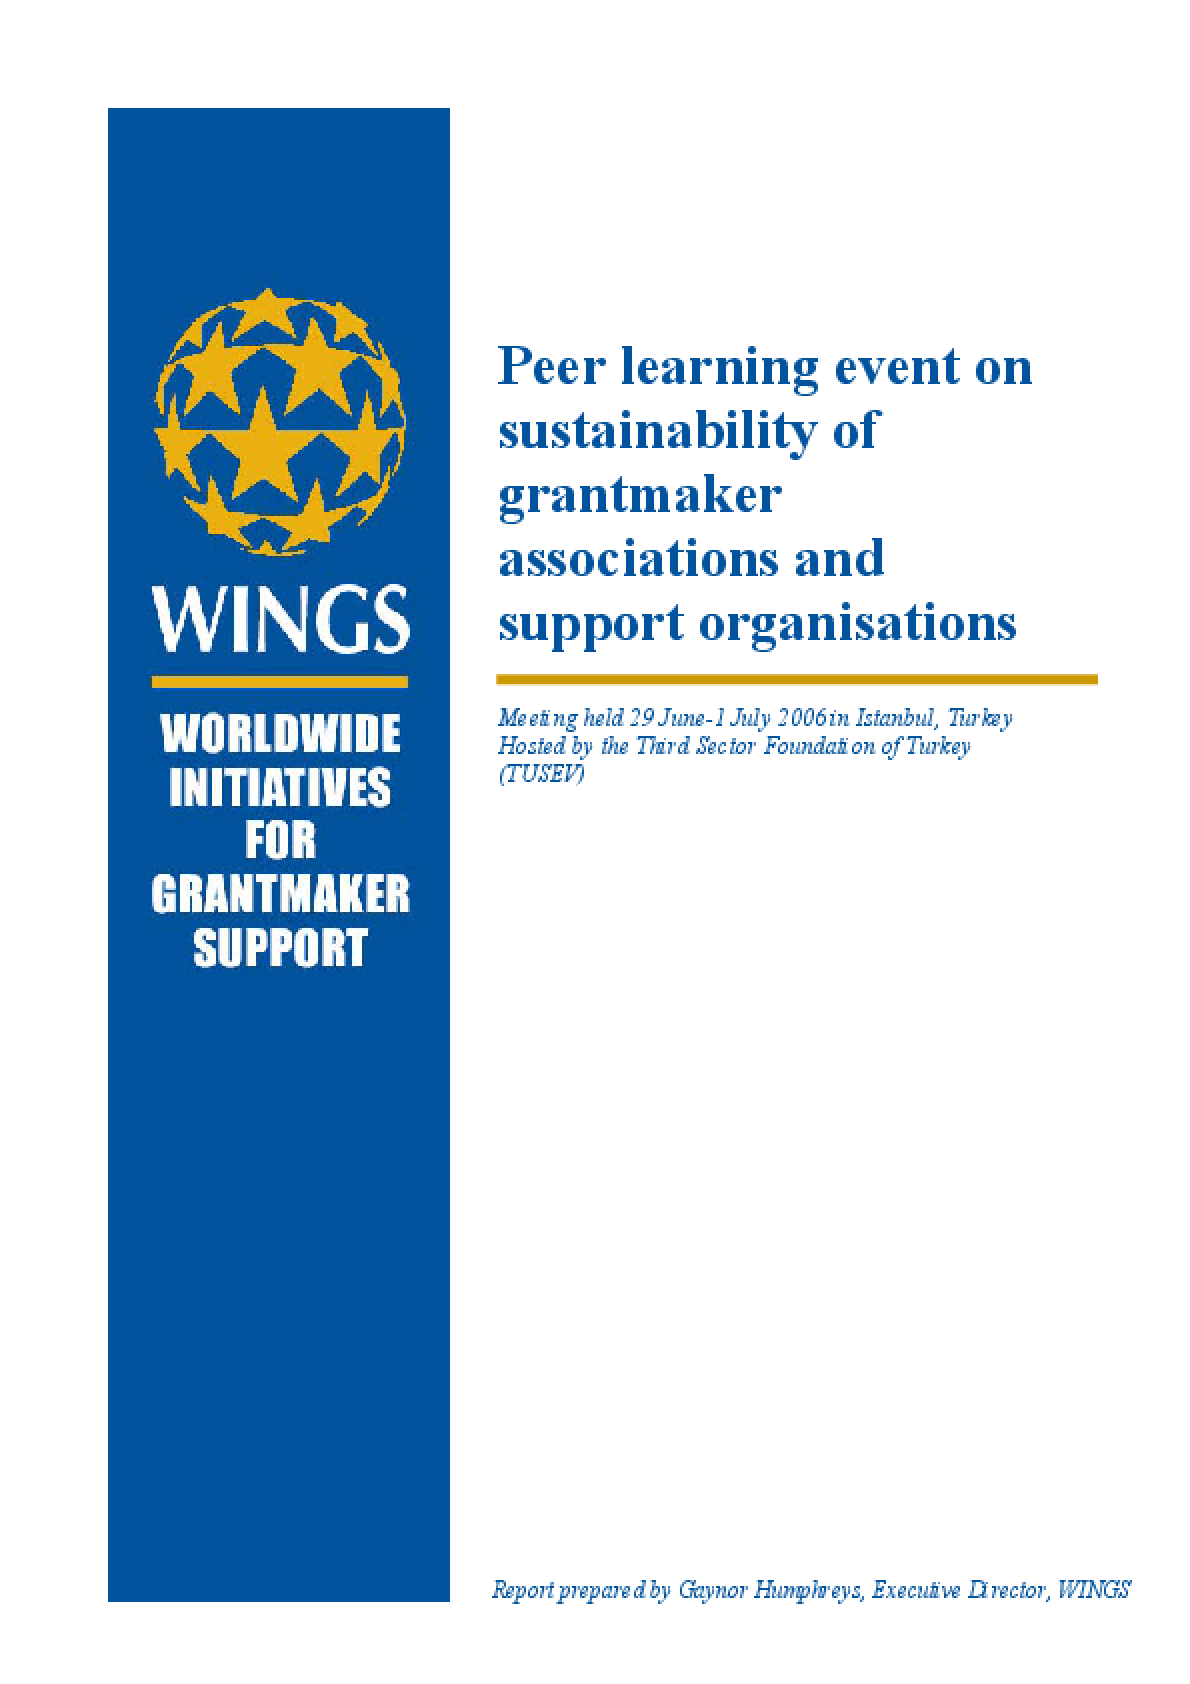 Peer Learning Event on Sustainability of Grantmaker Associations and Support Organisations